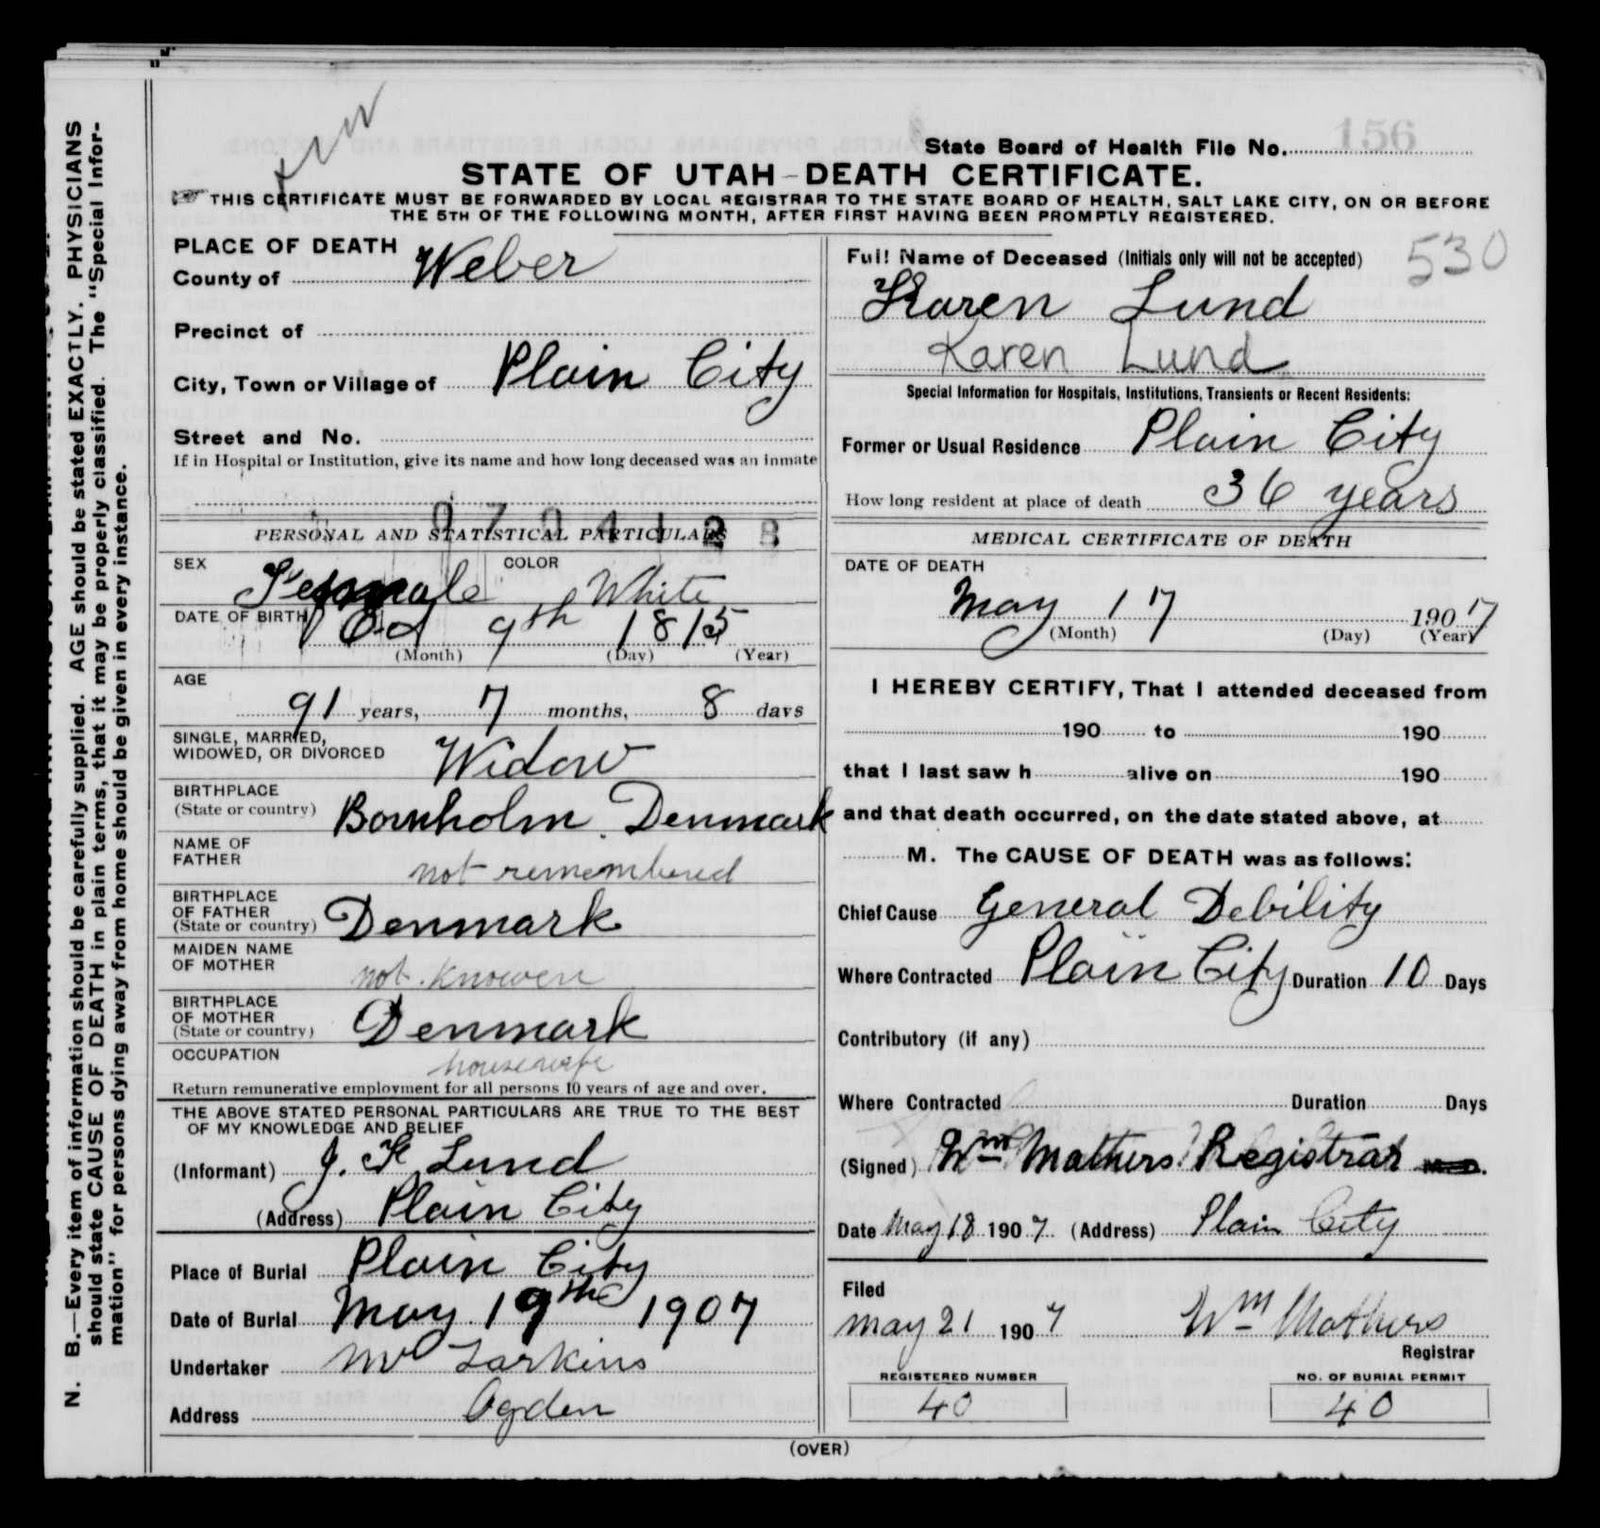 Lundology death certificate karen lund source state of utah utah death certificates 1904 1956 entry no 12318 karen lund 17 may 1907 digital images utah state archives and records service 1betcityfo Choice Image